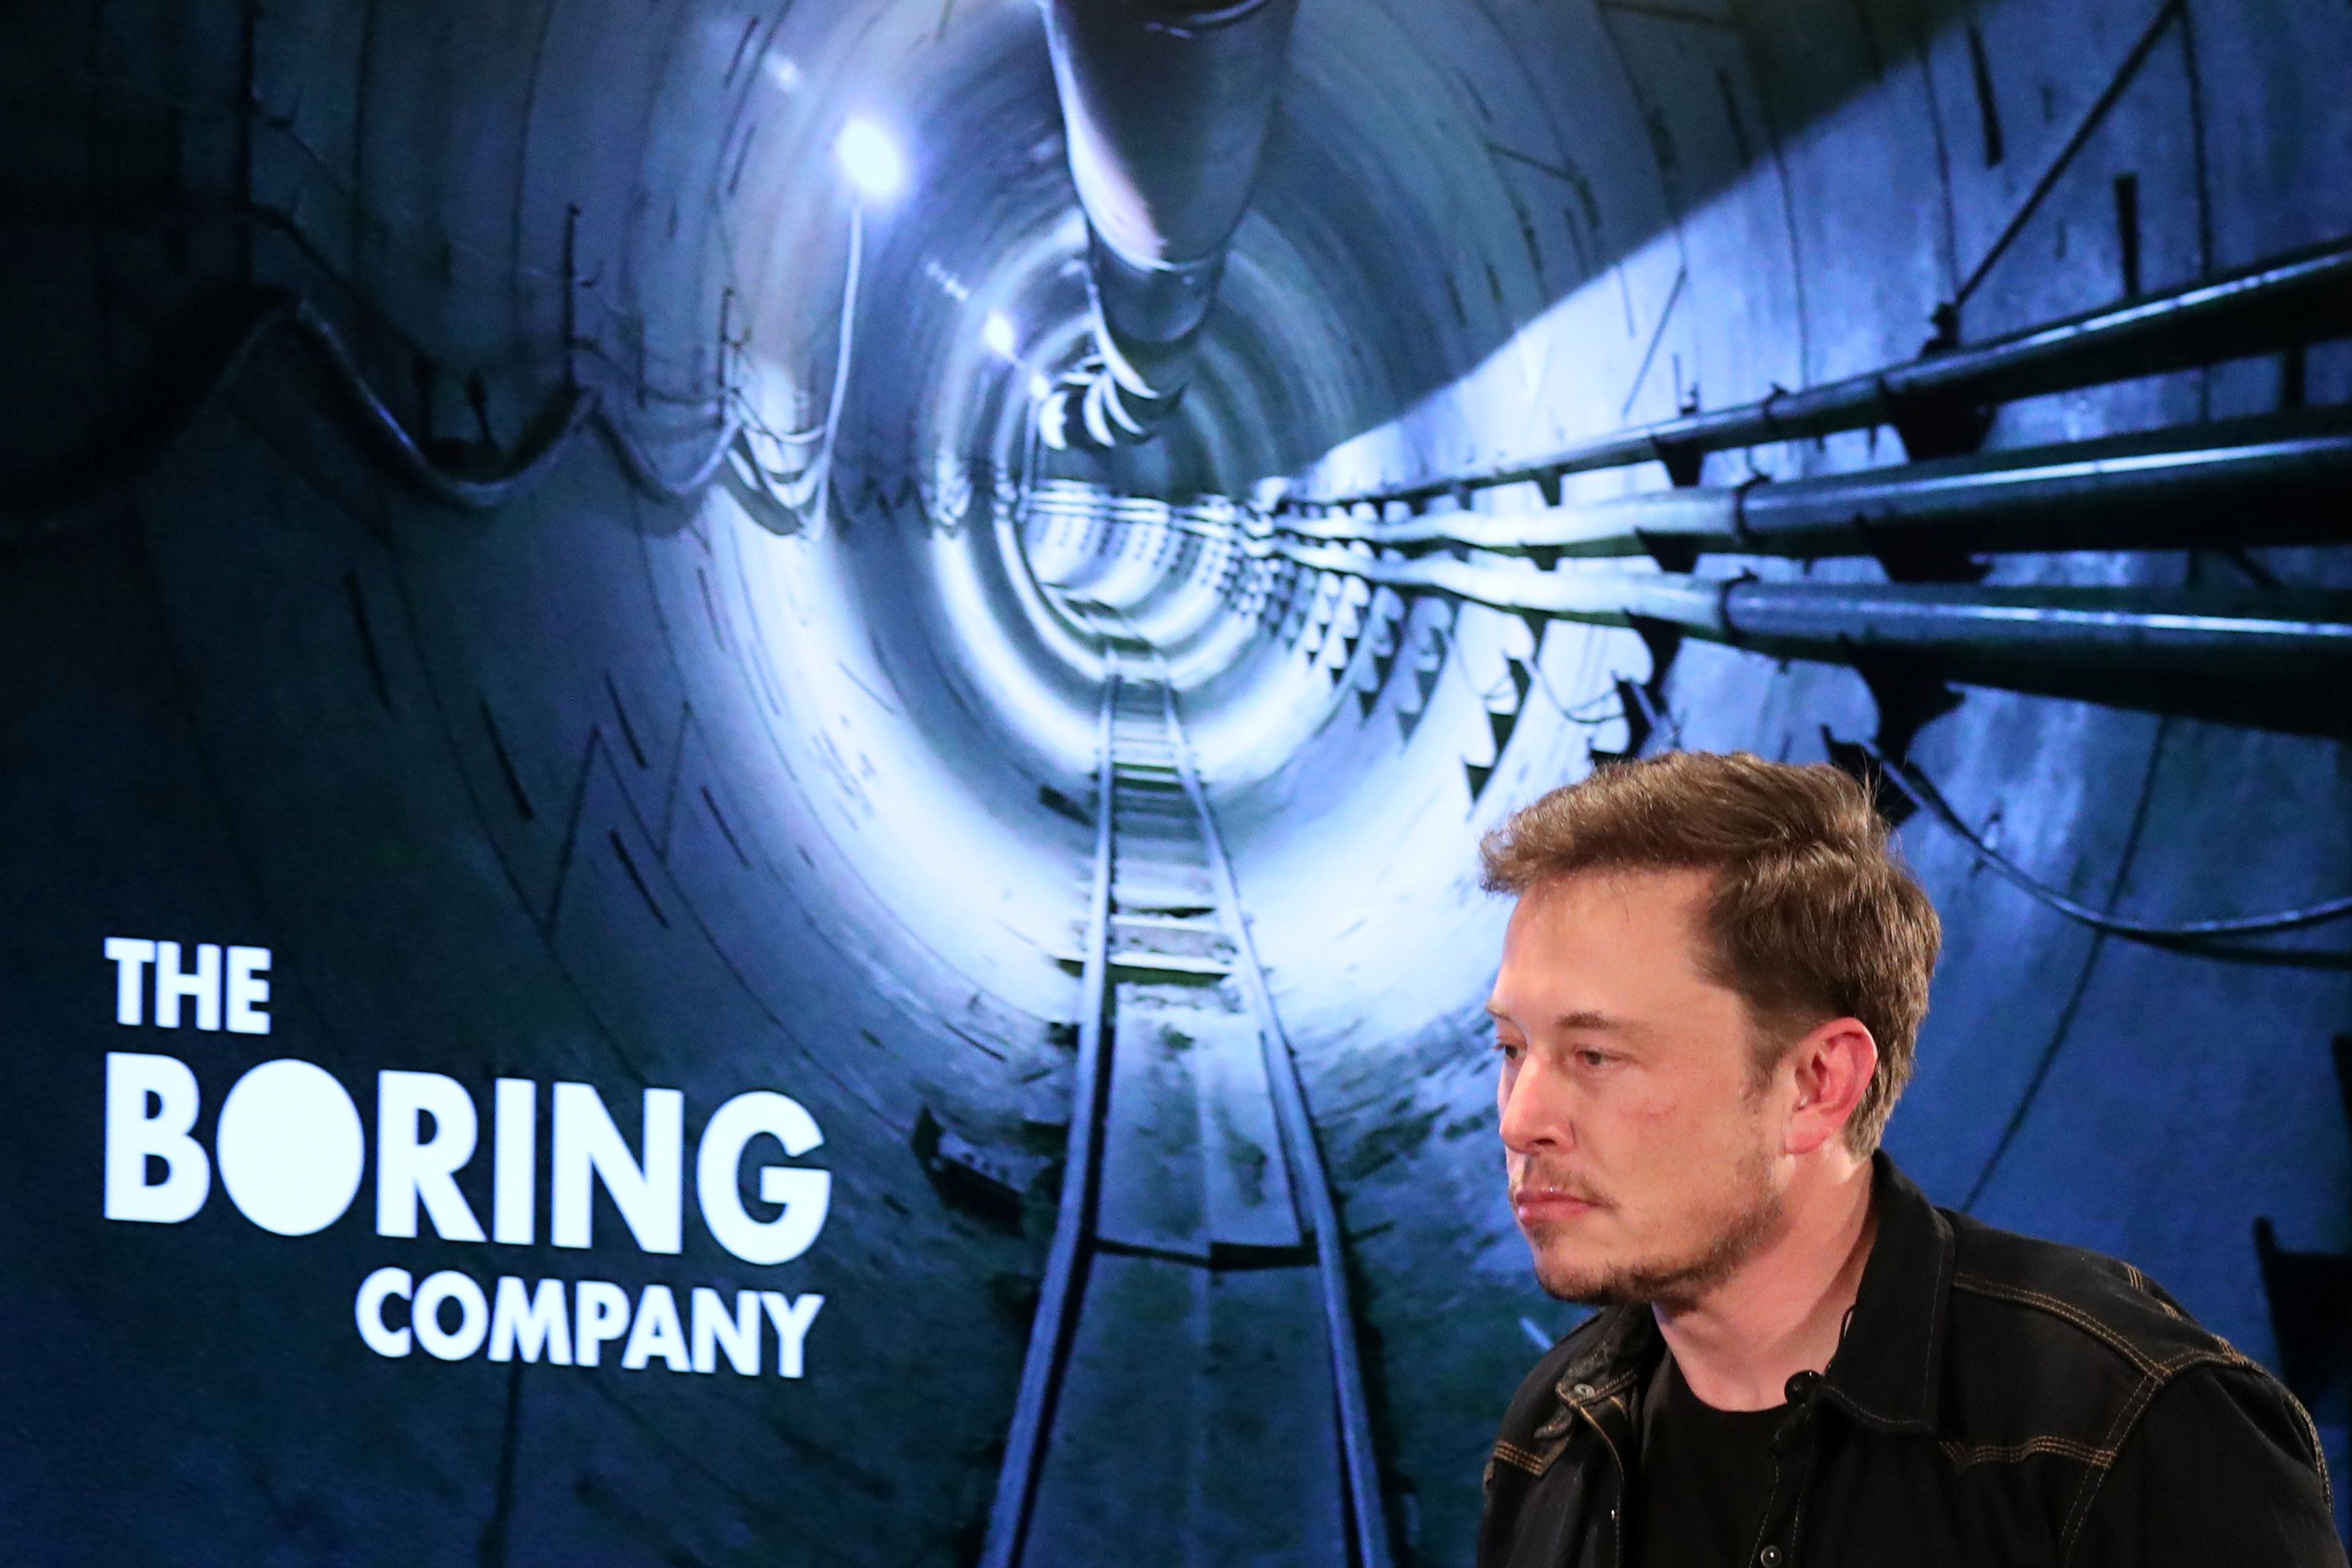 Elon Musk Ducks Out Of One Los Angeles Tunnel But Pursues